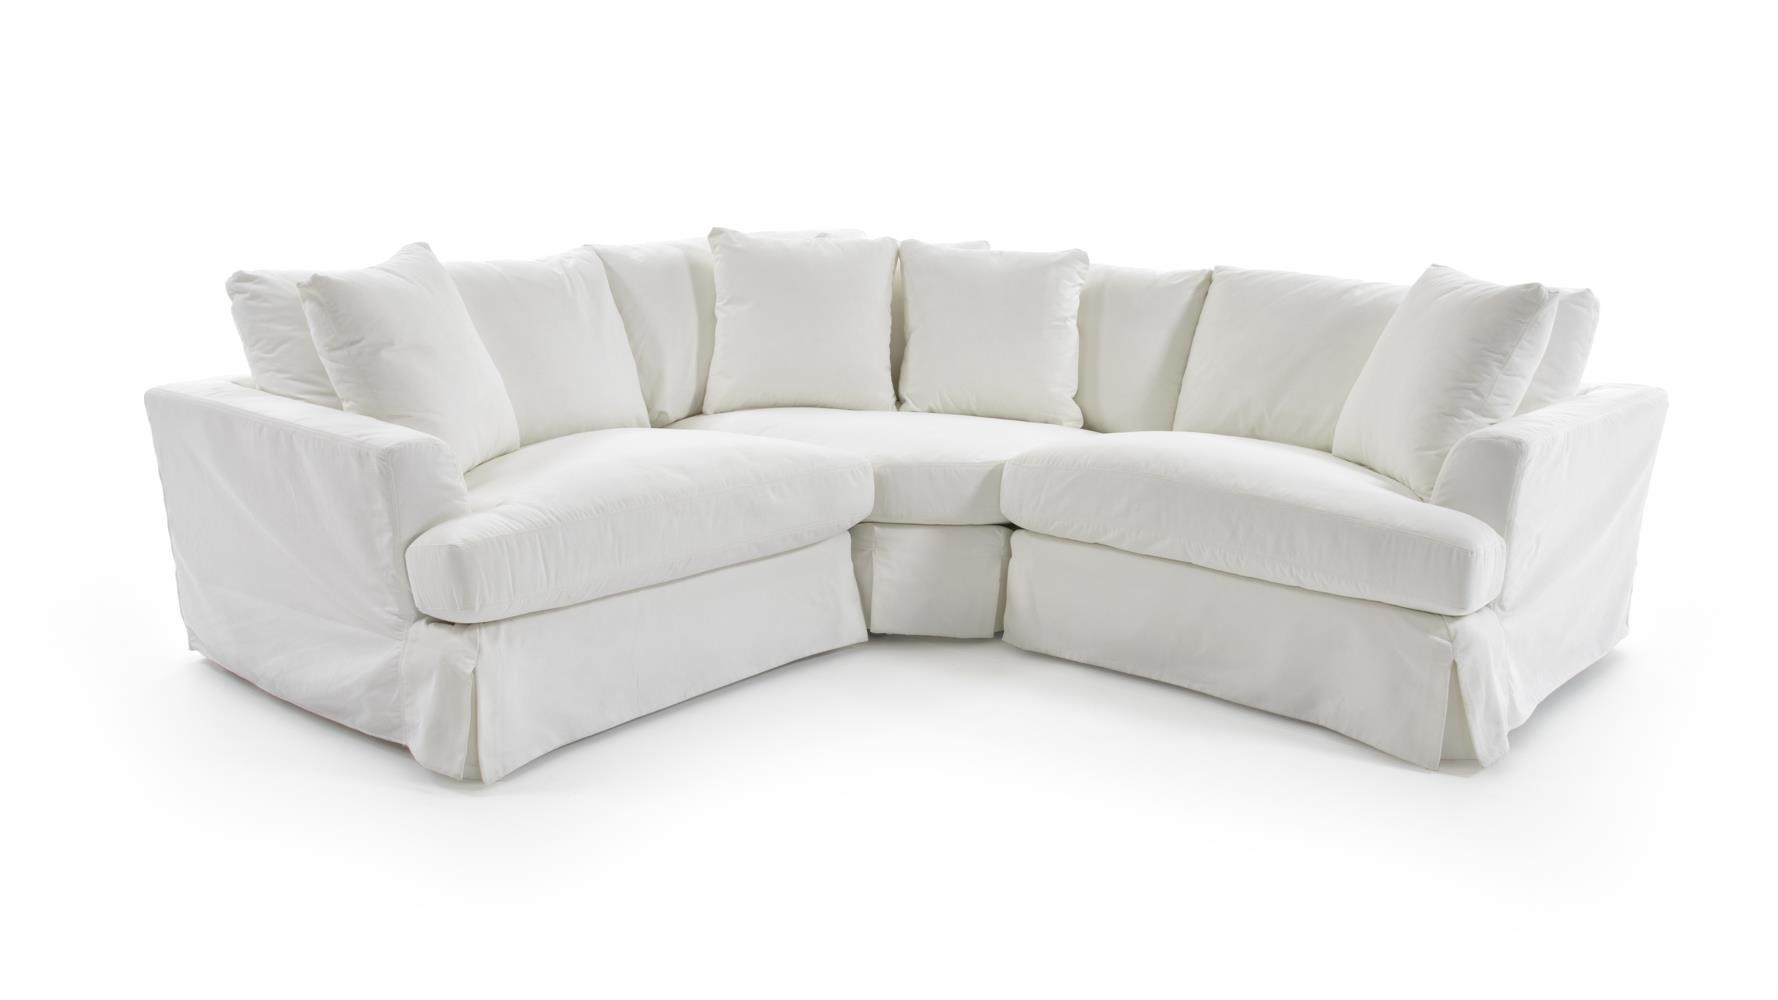 Synergy Home Furnishings 1300 3 Pc Sectional Sofa   Item Number: 1300 31+